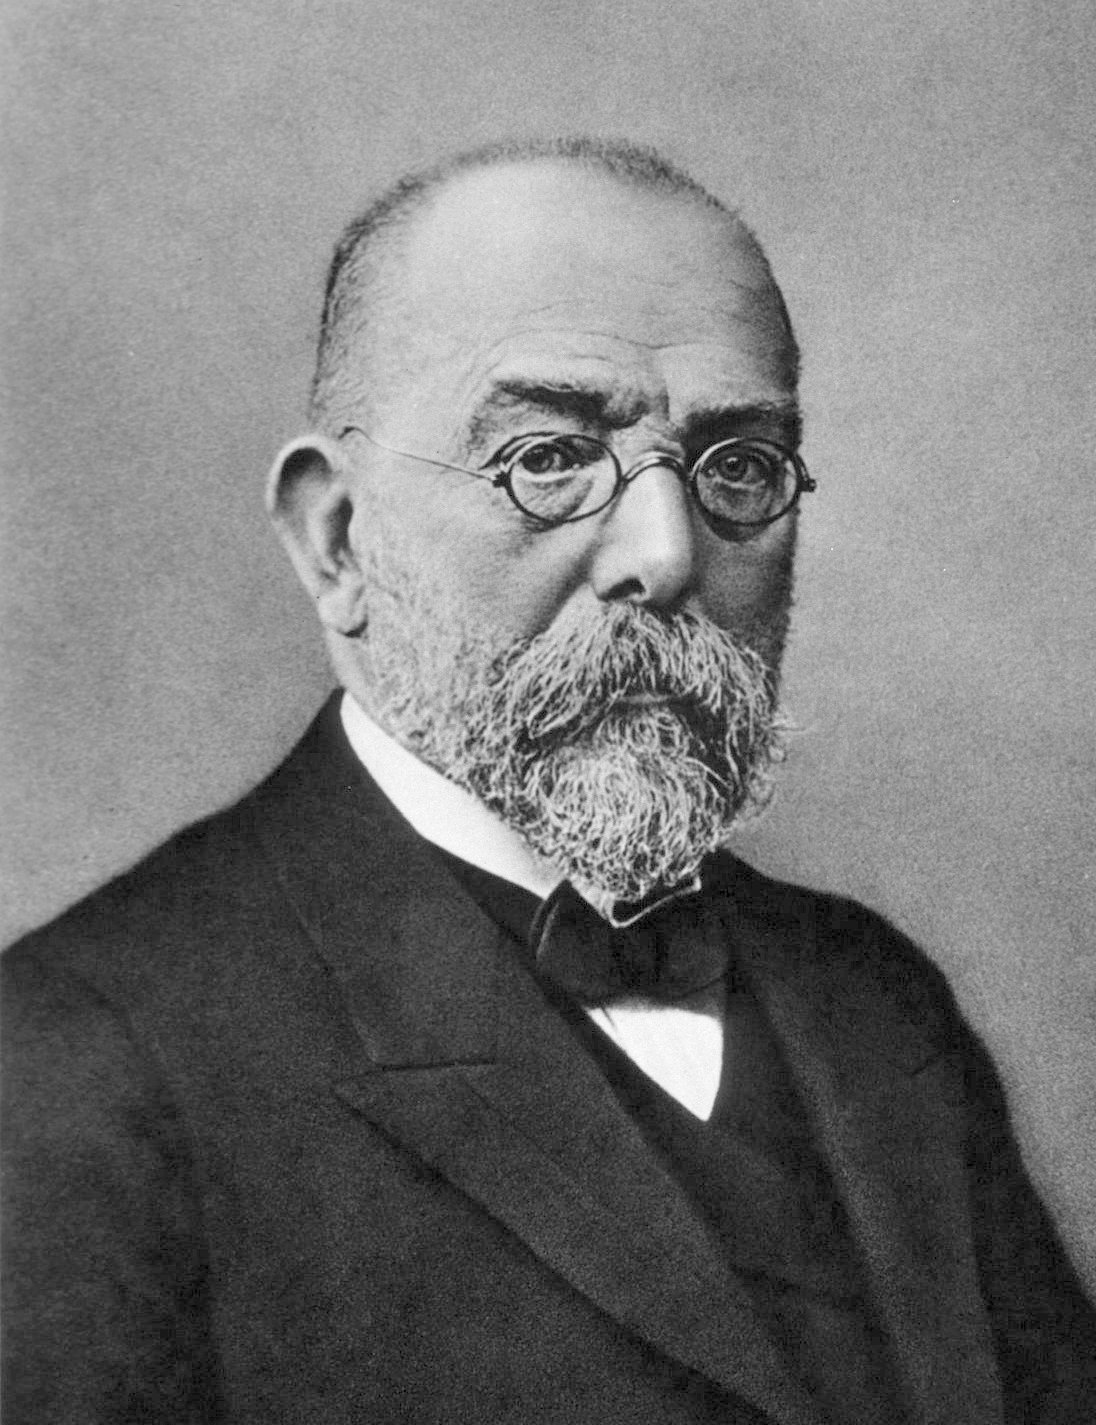 http://upload.wikimedia.org/wikipedia/commons/9/99/Robert_Koch_BeW.jpg